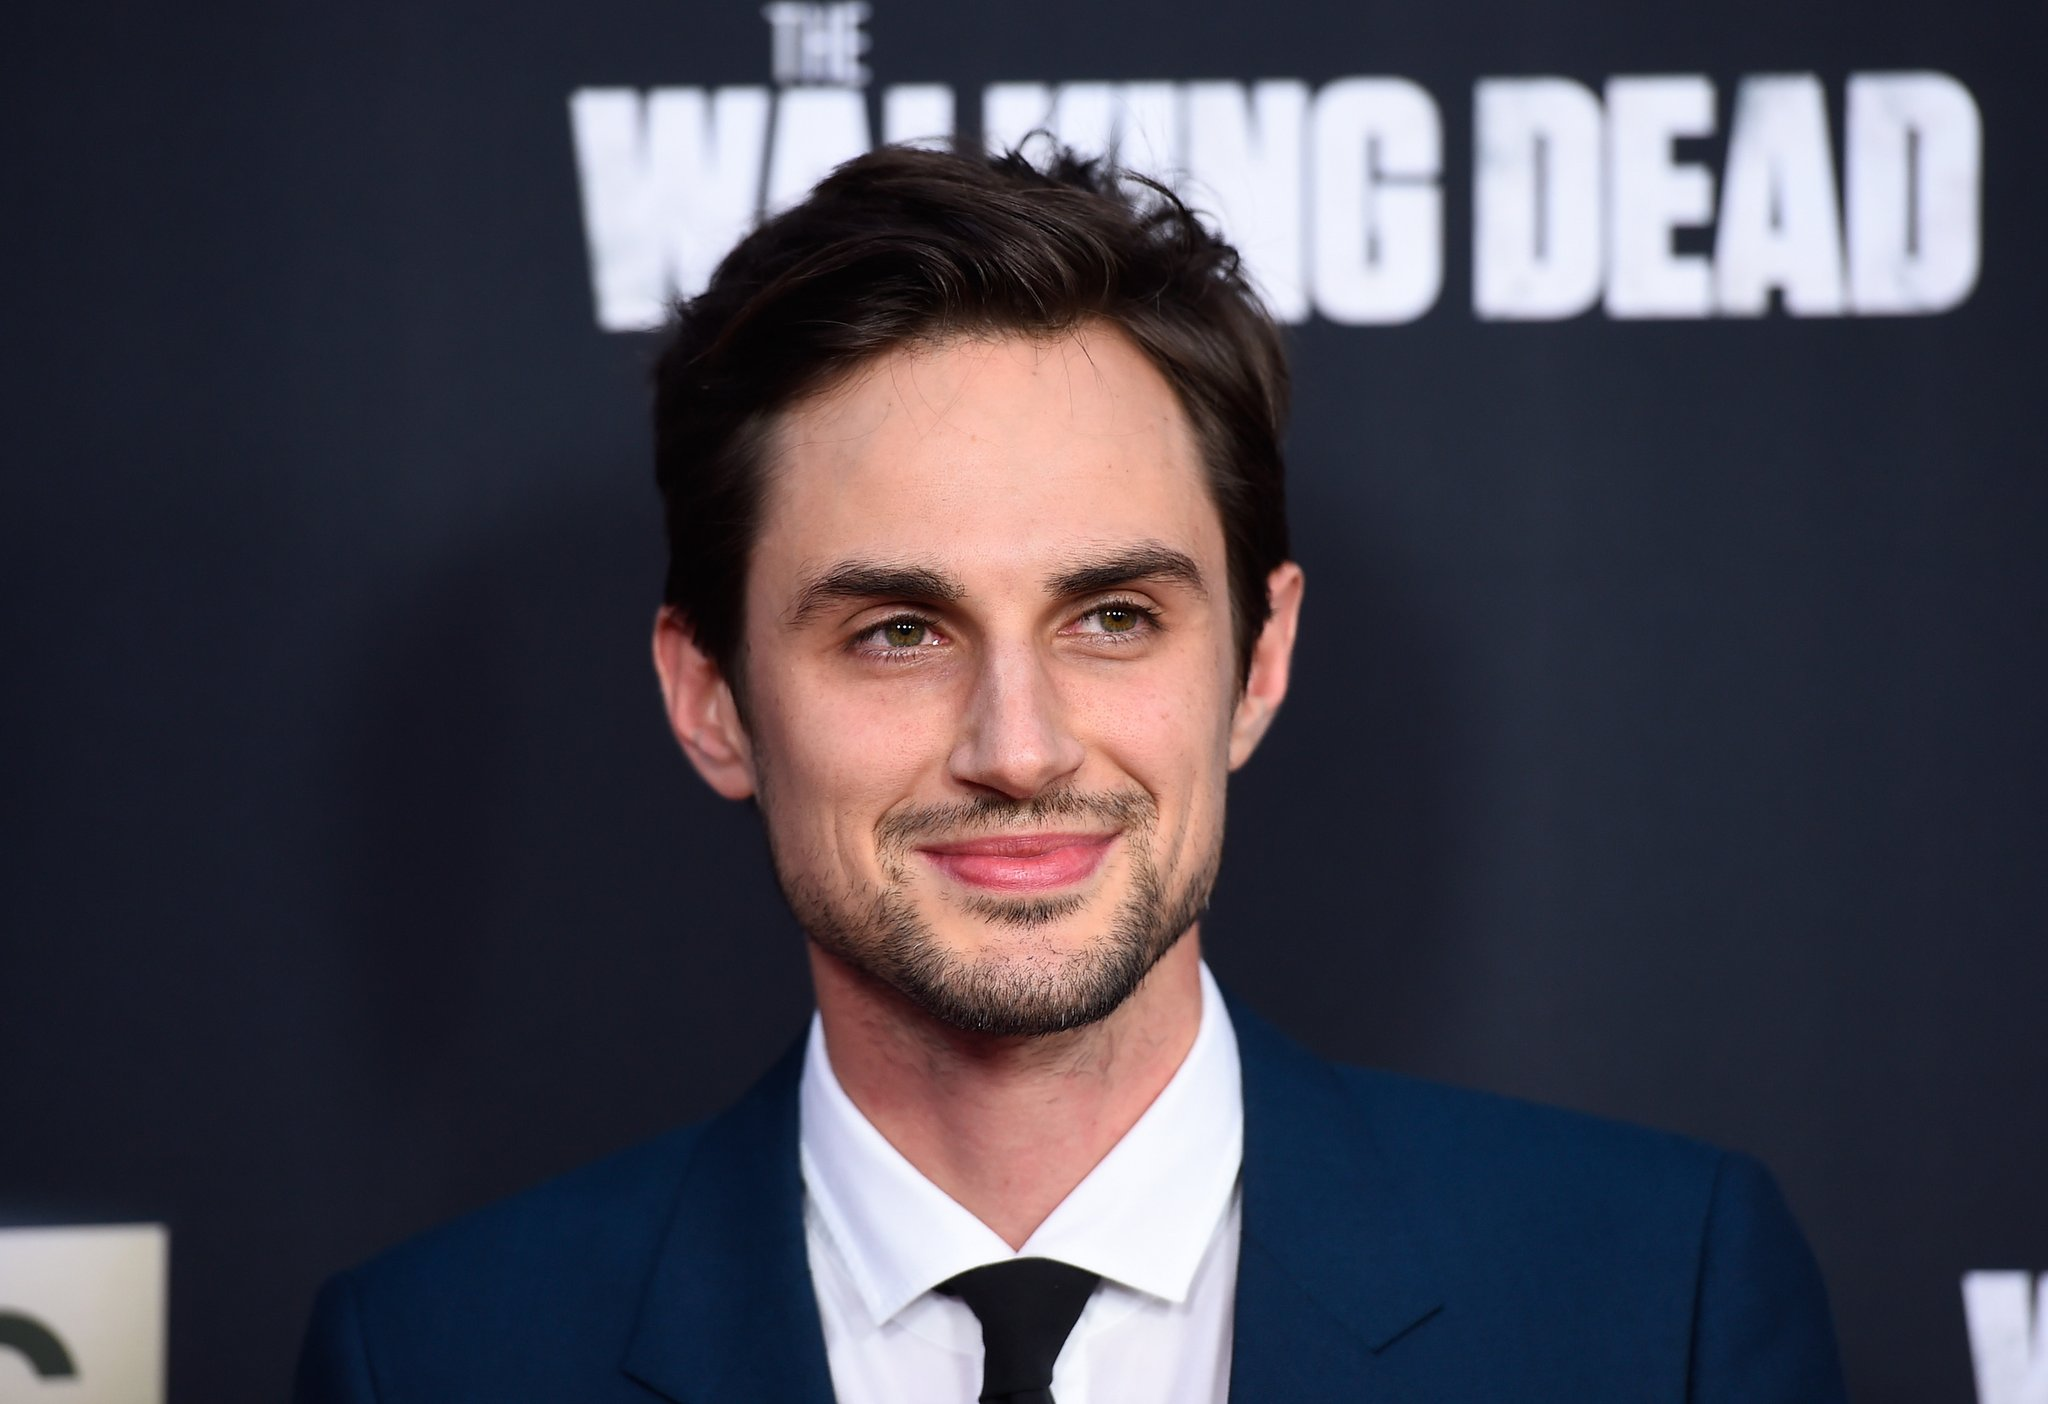 Who Is Andrew J. West? Get to Know Once Upon a Time's Latest Heartthrob